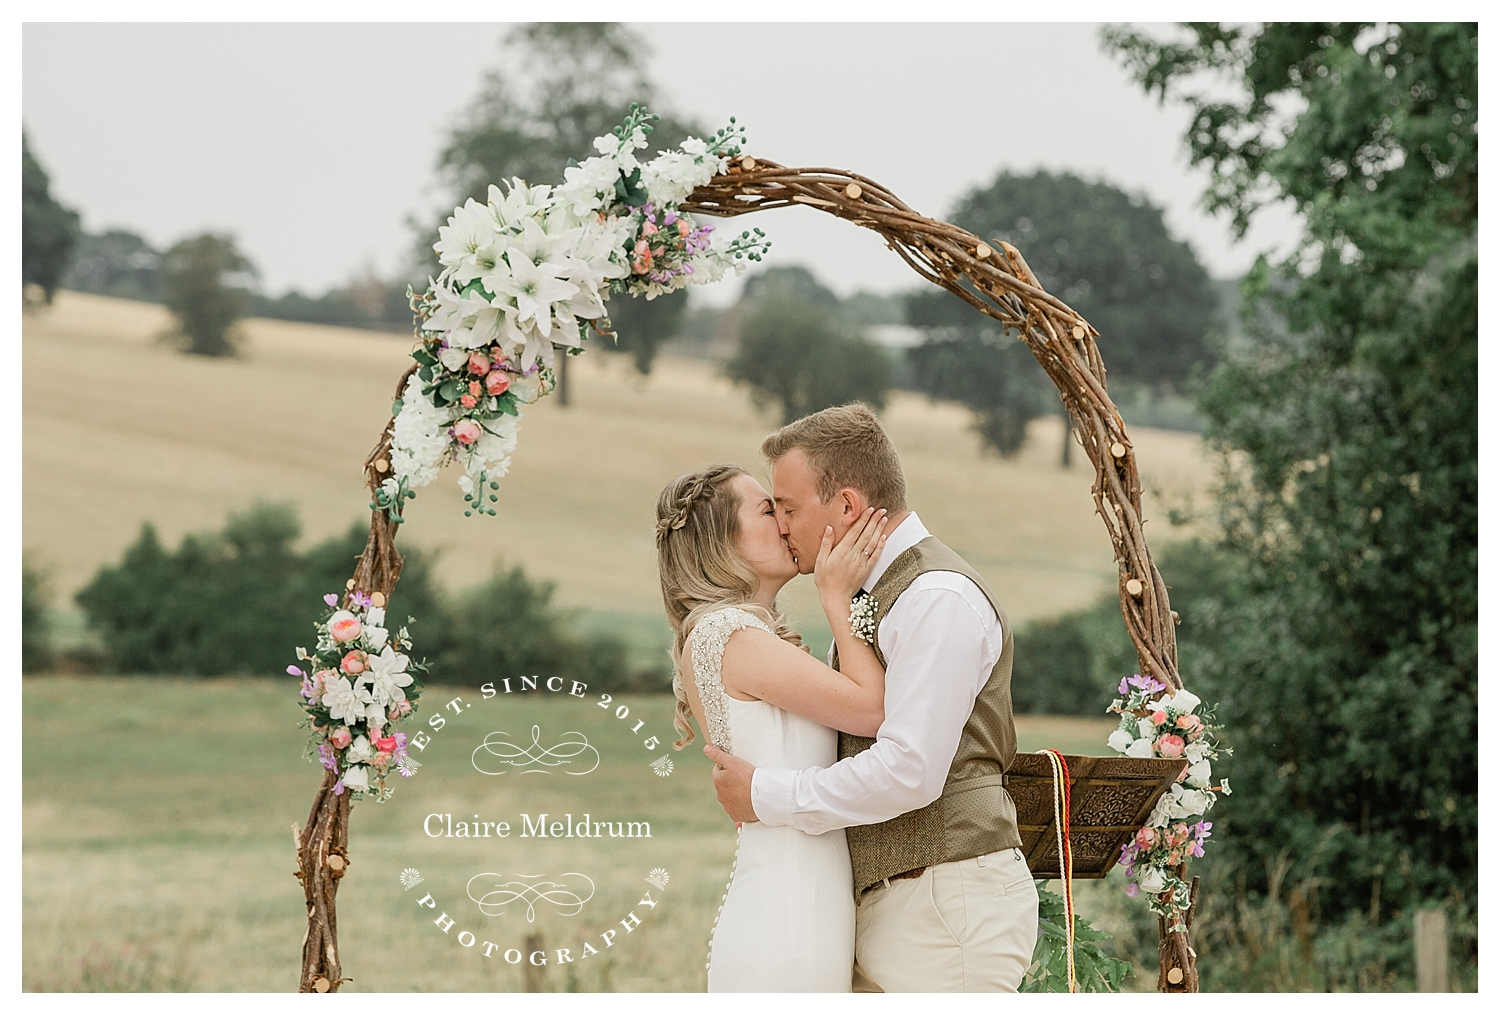 Tipi wedding Staffordshire, Peak Tipis, Claire Meldrum Photography, Relaxed Photographer,